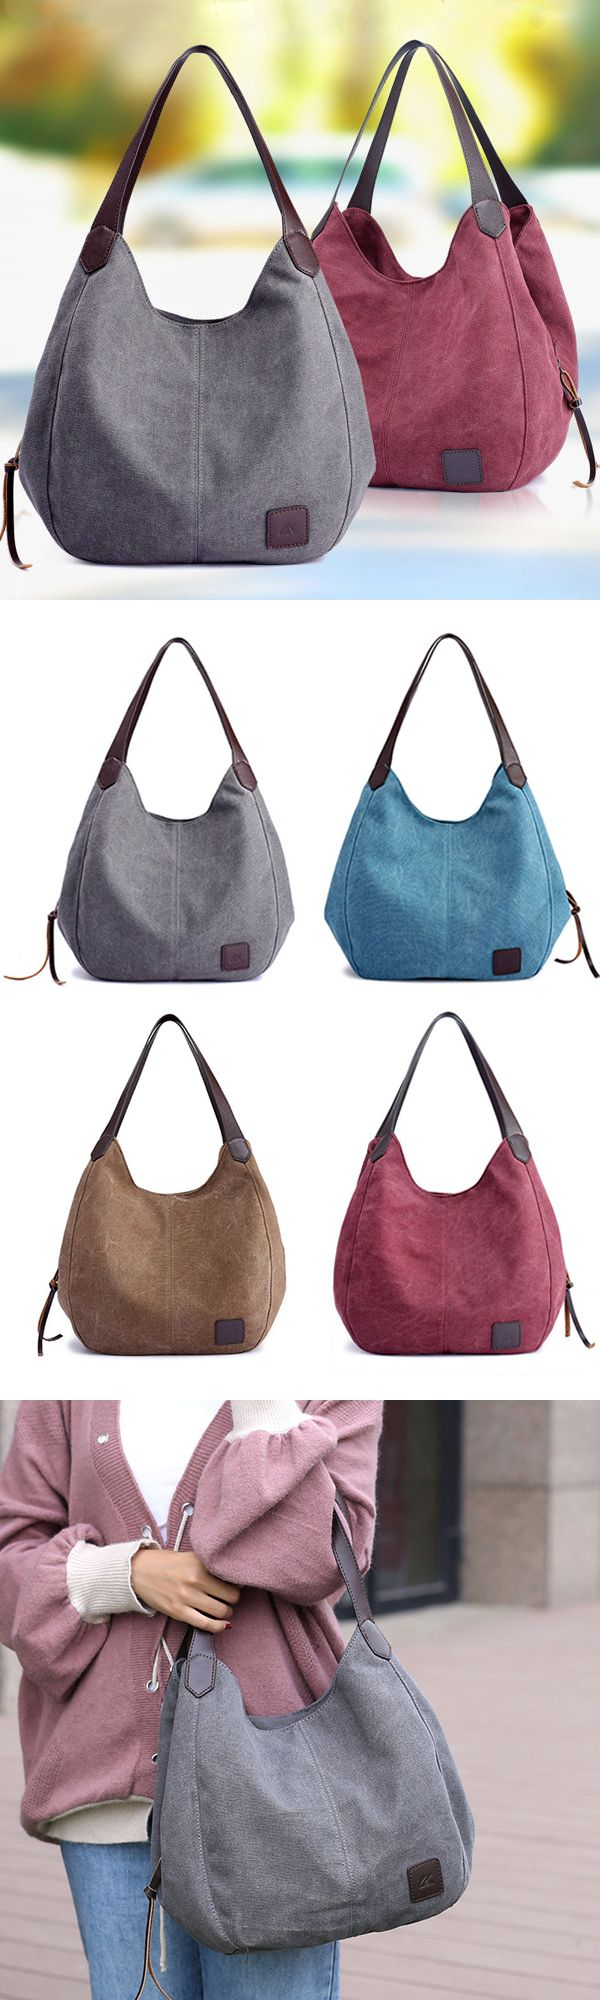 Canvas Tote Bag /Casual Handbag